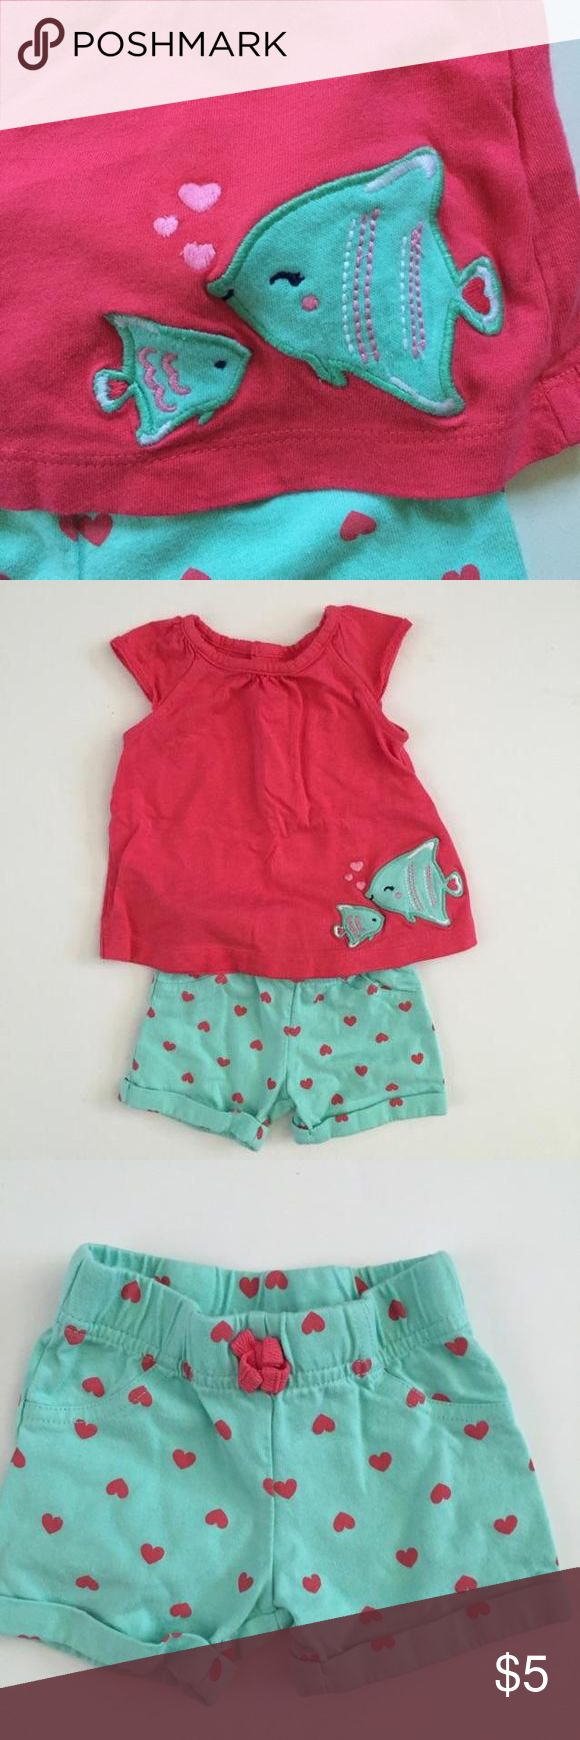 Child of Mine Loved this outfit!  Mint shorts and pink top. Gently used. Child of Mine Matching Sets